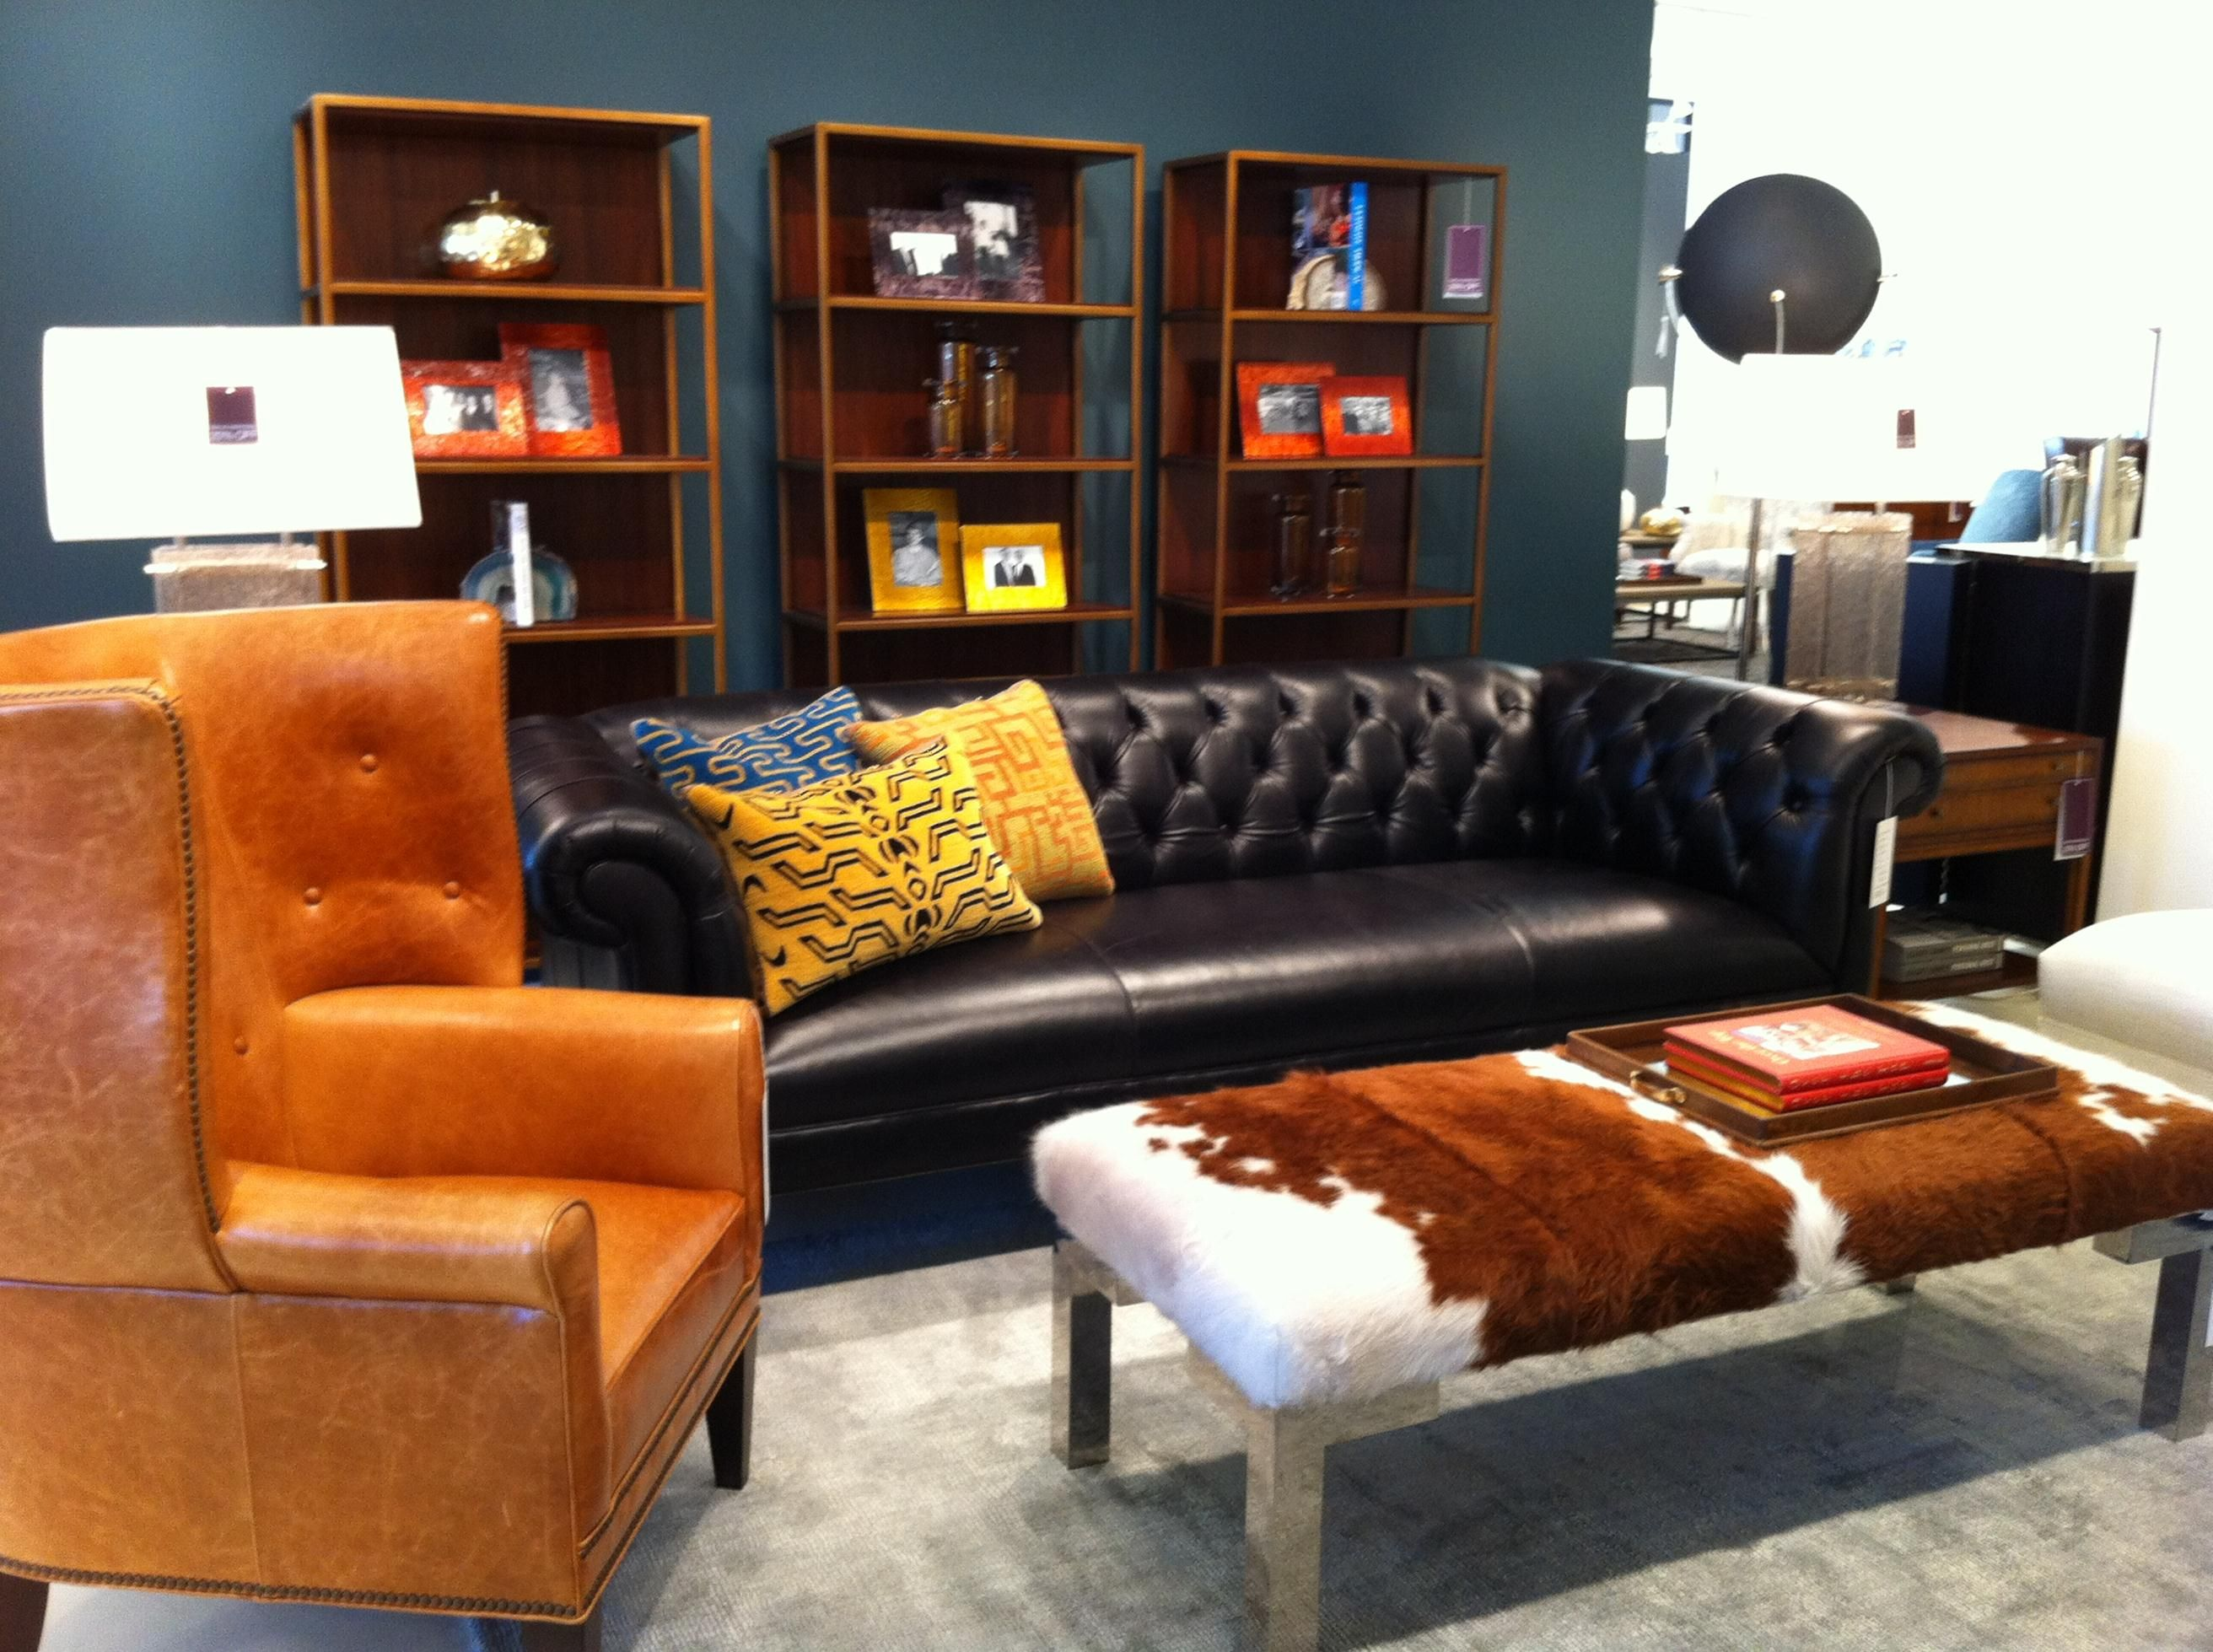 Love the color combo hide coffee table is a nice touch living